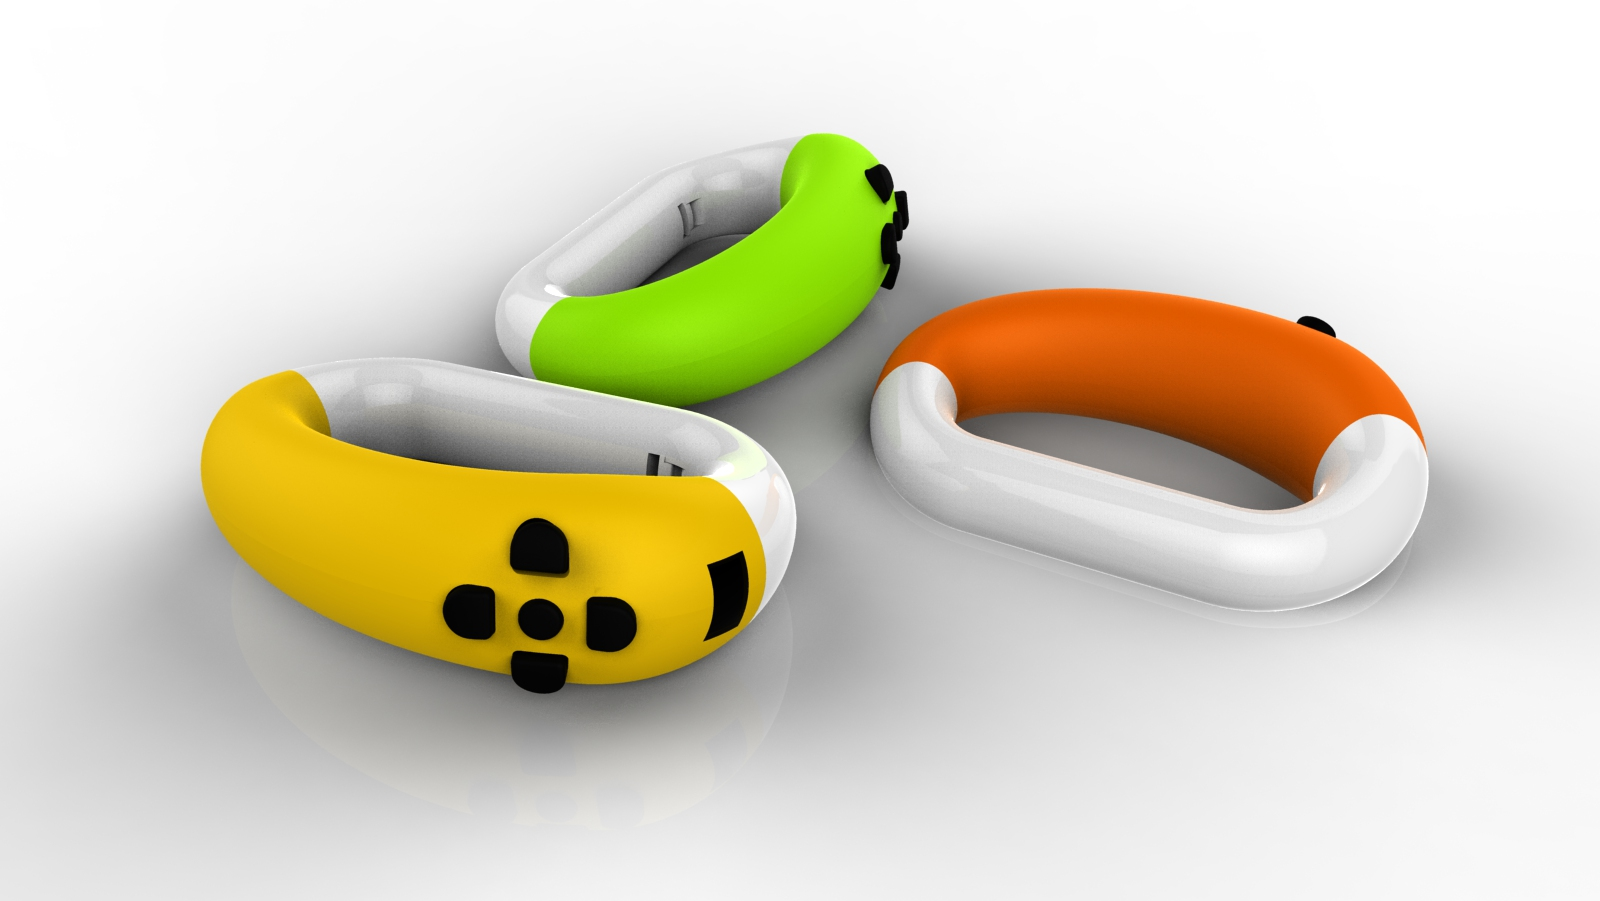 Controller in various colors